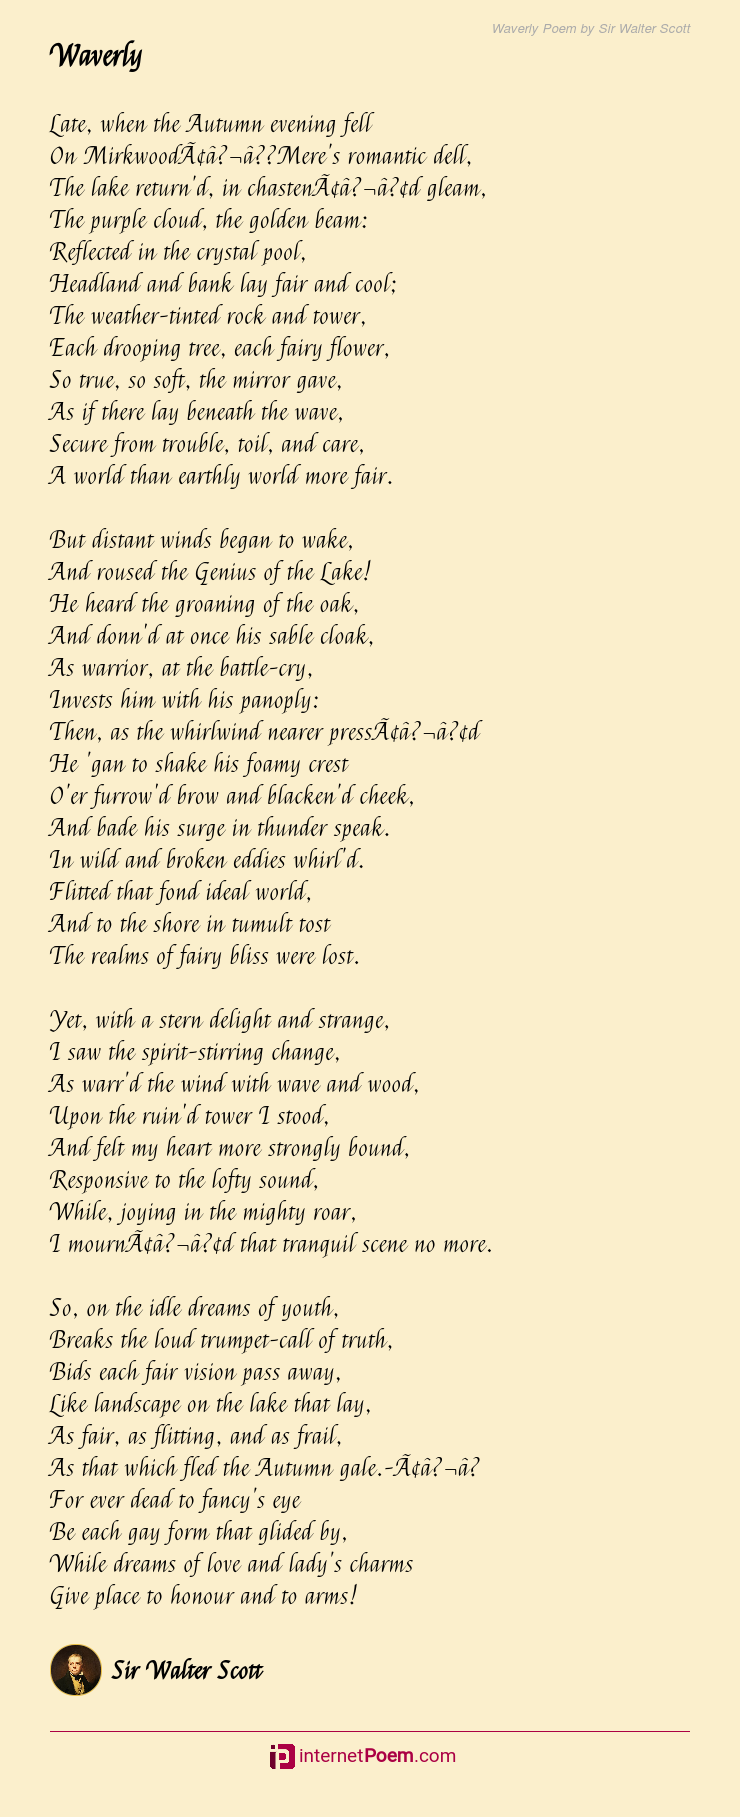 Waverly Poem By Sir Walter Scott